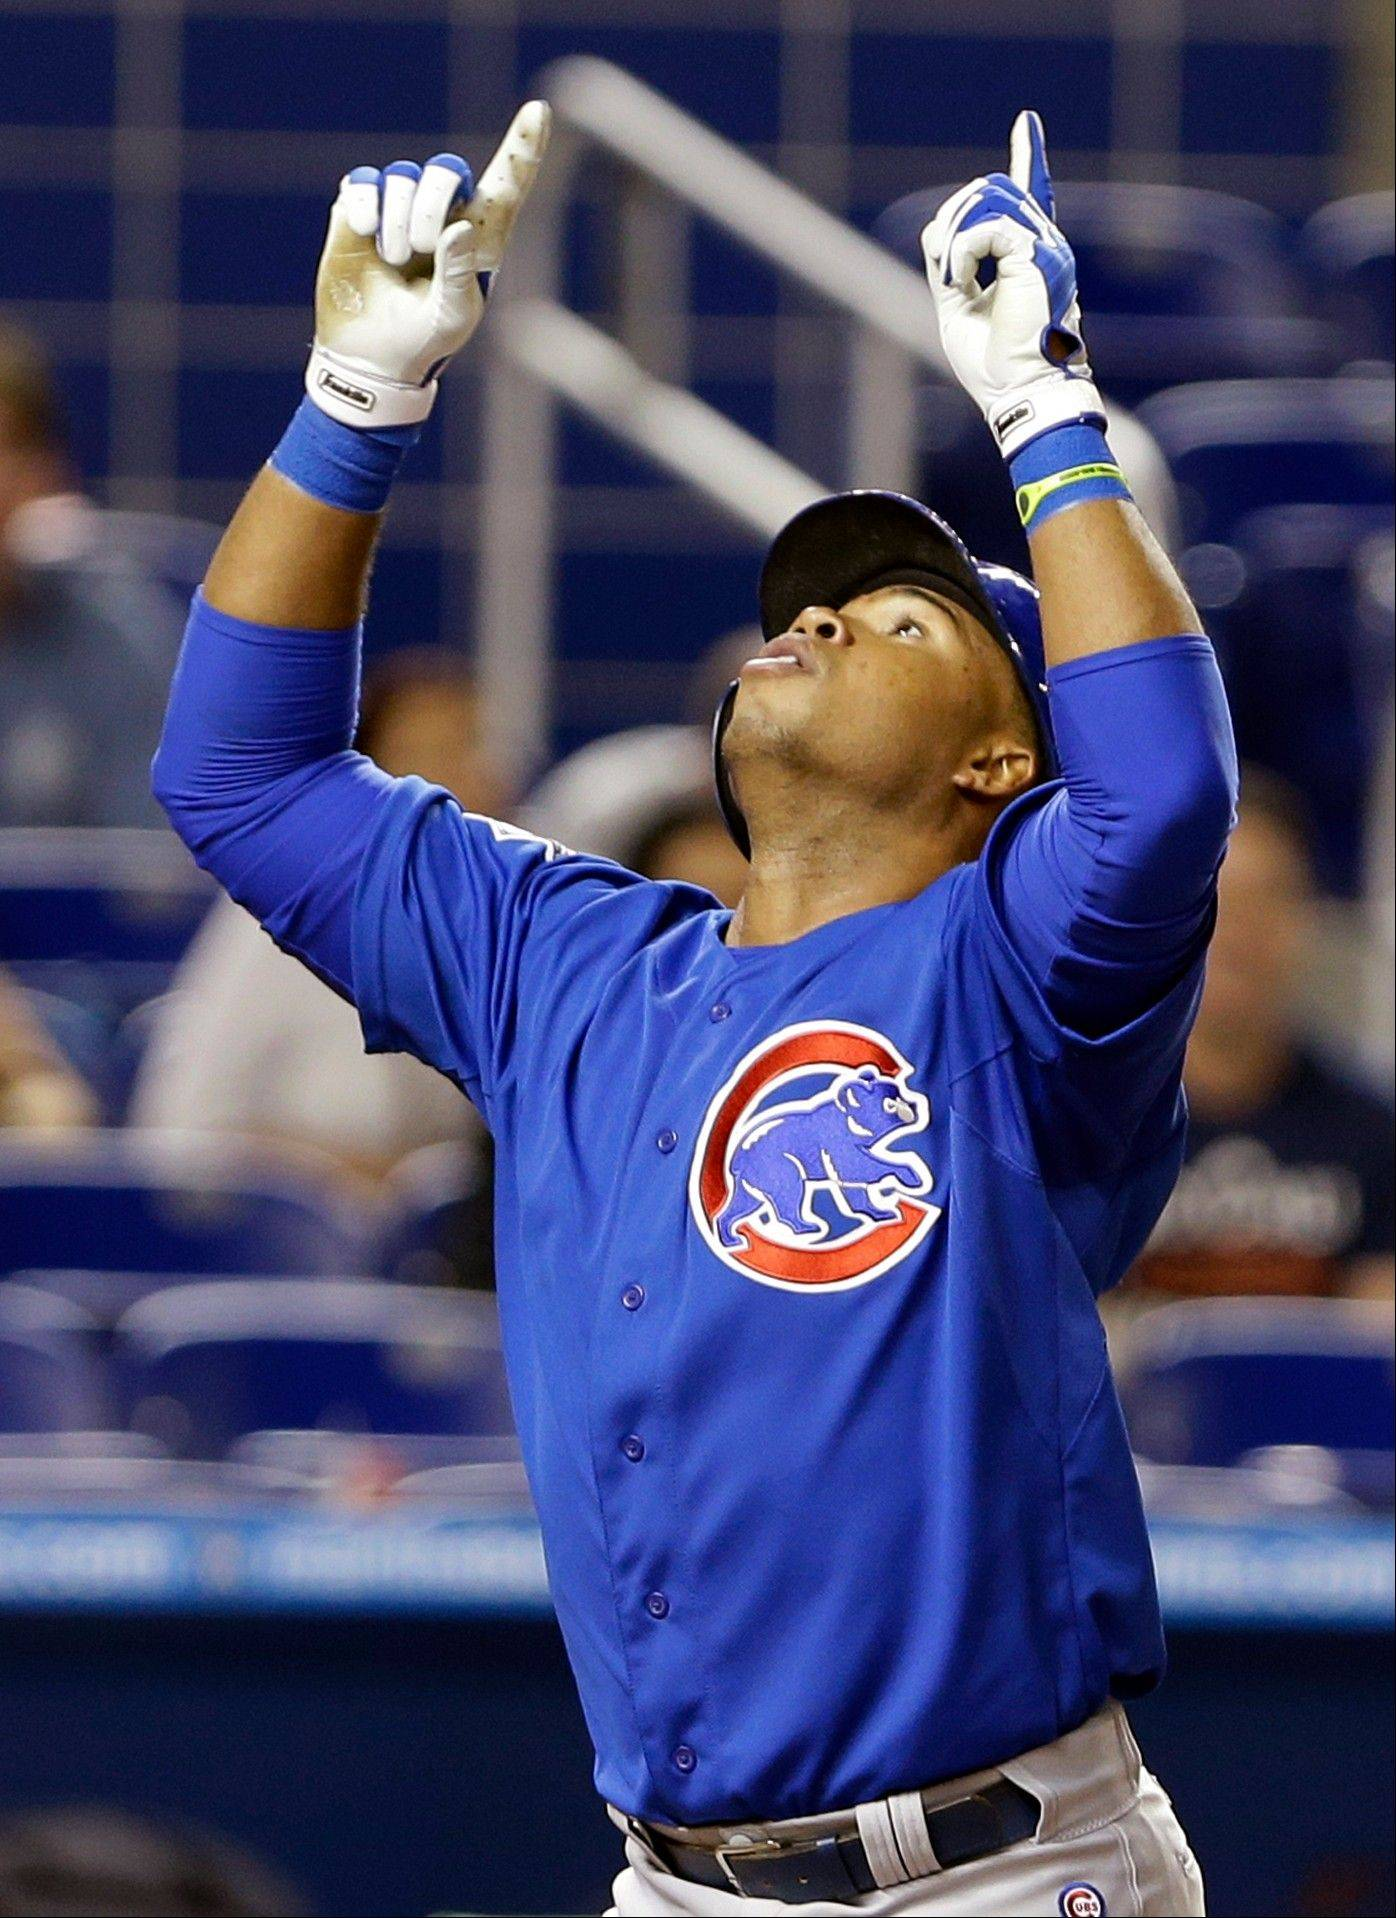 Cubs third baseman Luis Valbuena celebrates as he crosses home plate after hitting the tiebreaking solo home run during the ninth inning Thursday night. The Cubs defeated the Marlins 4-3.